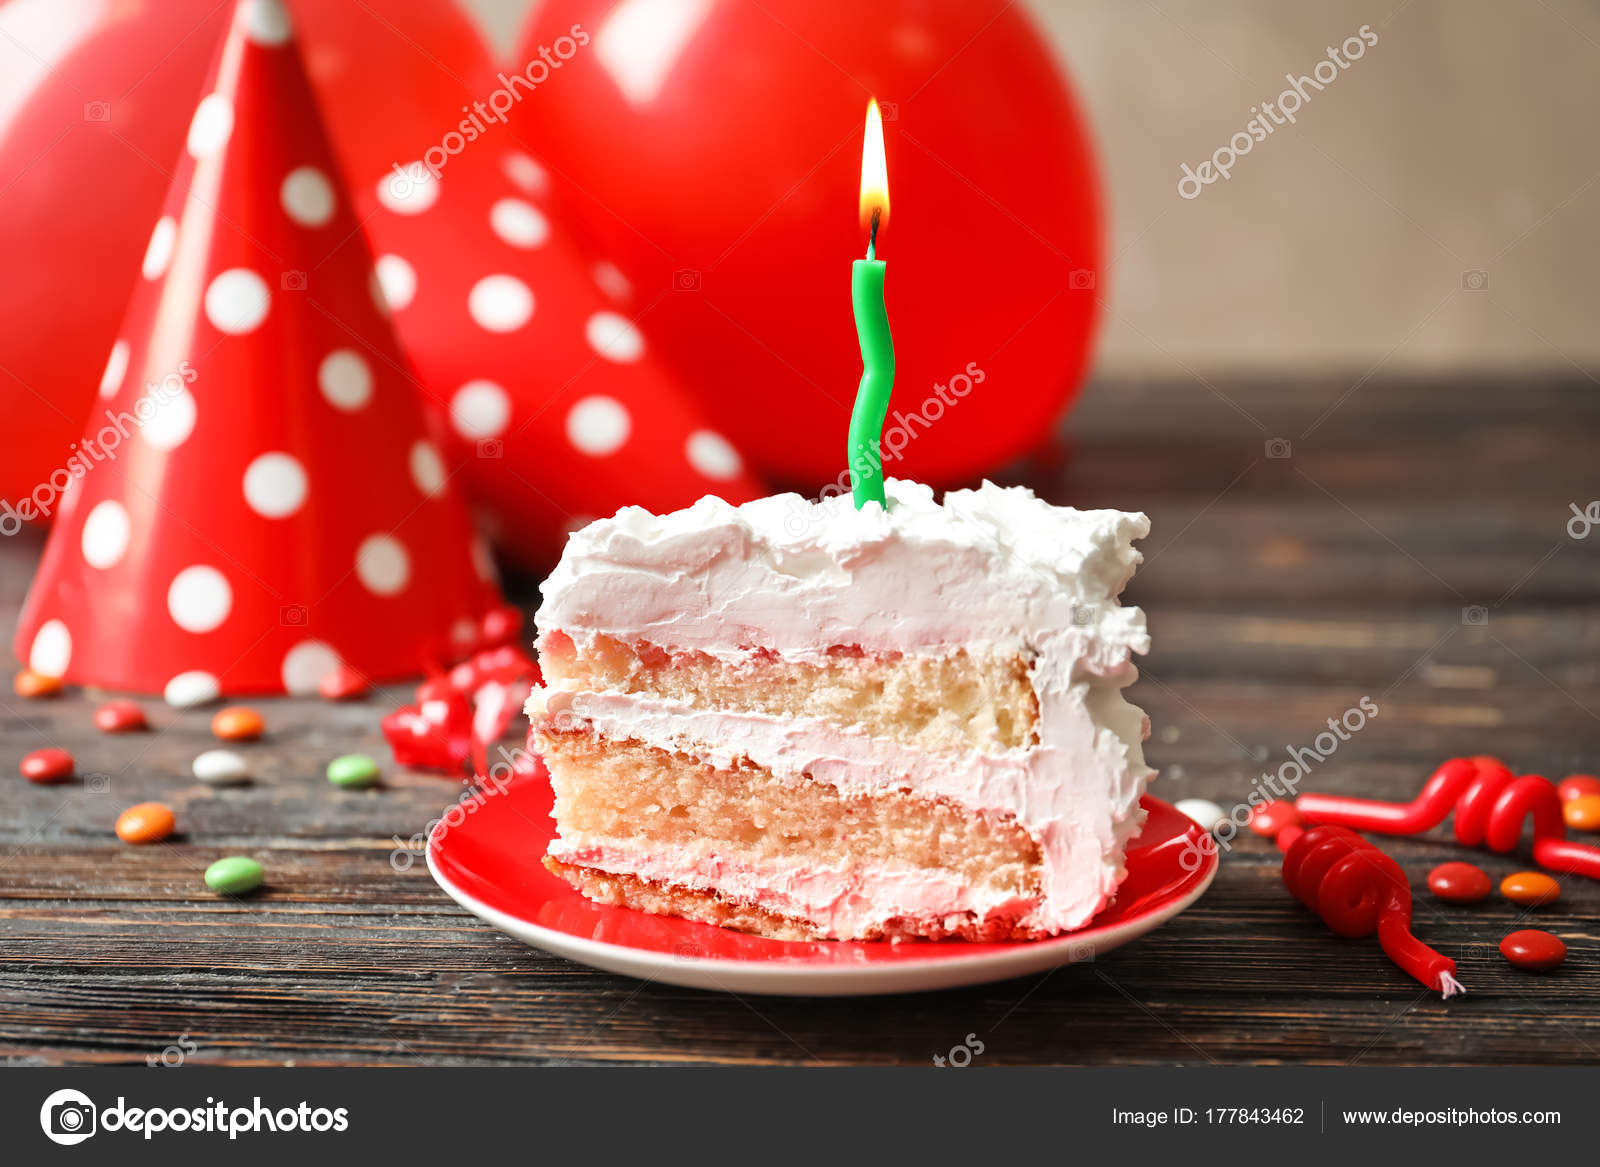 Admirable Piece Of Birthday Cake With Candle On Table Stock Photo Personalised Birthday Cards Petedlily Jamesorg